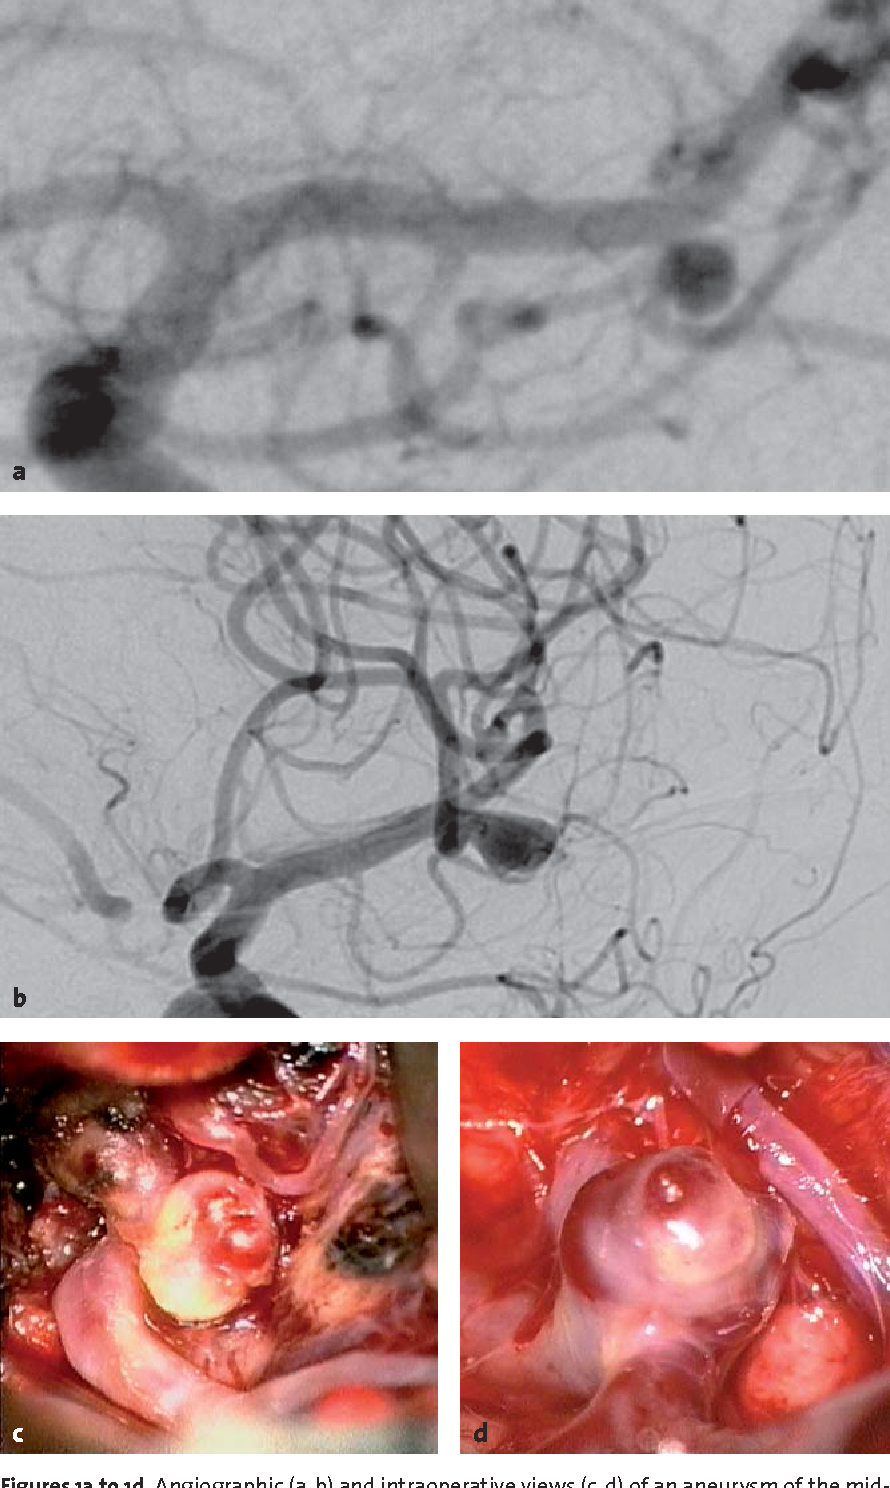 Figures 1a to 1d. Angiographic (a, b) and intraoperative views (c, d) of an aneurysm of the middle cerebral artery with a satellite aneurysm.